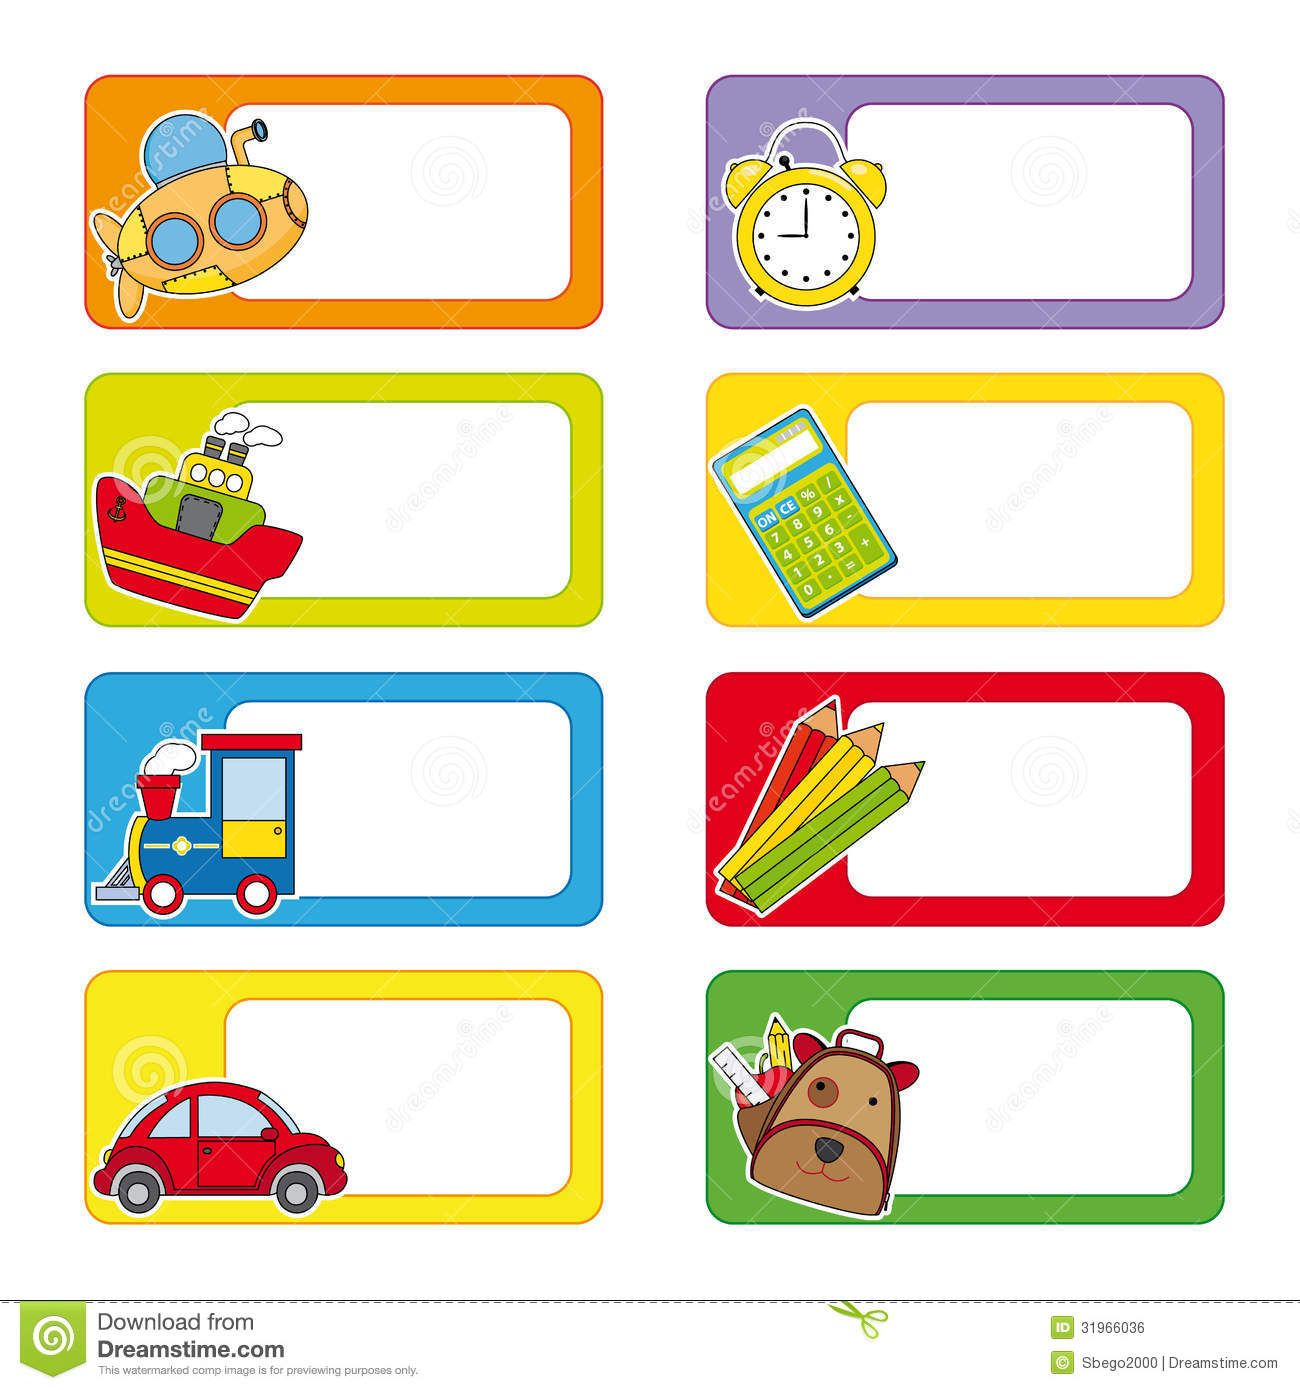 School Labels Download From Over 65 Million High Quality Stock Photos Images Vectors Sign Up For Fr School Labels School Labels Printables School Stickers Name tag template free download